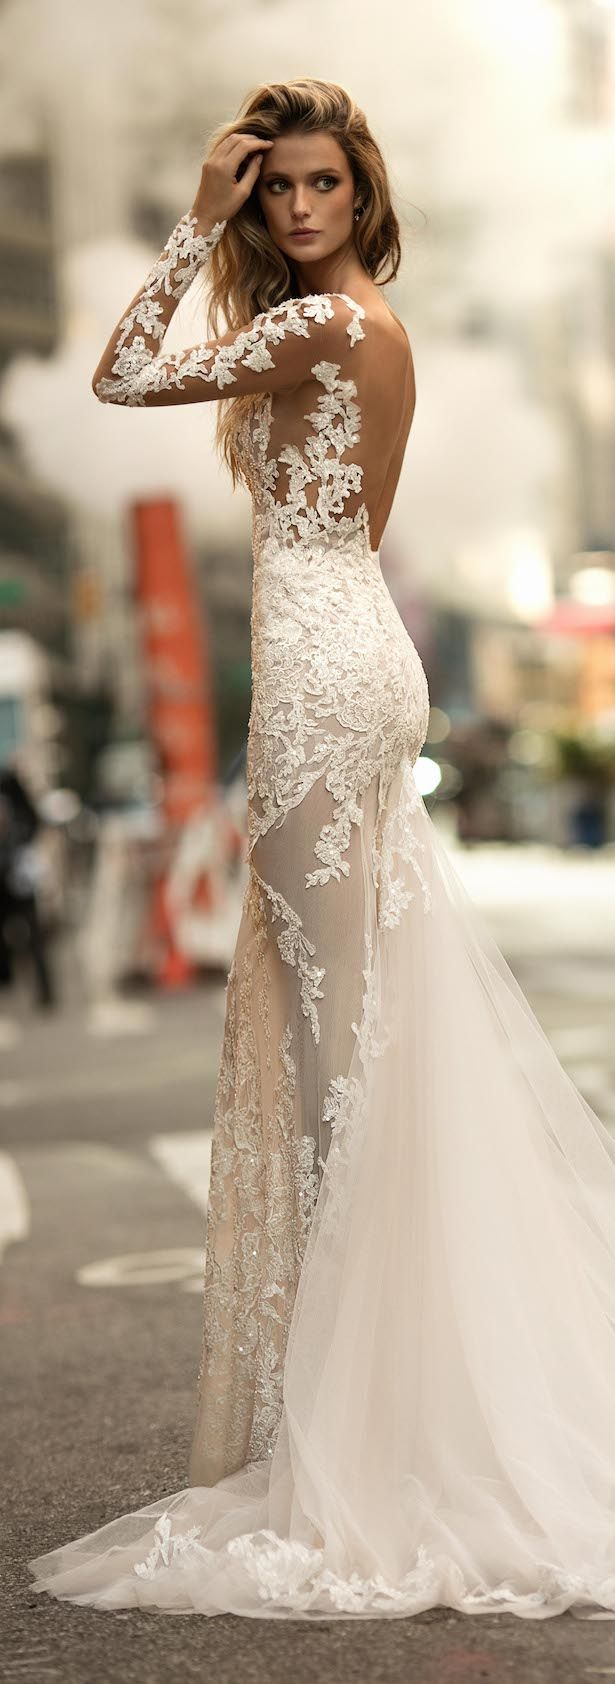 Best 25+ Wedding dresses ideas on Pinterest | Bridal dresses ...